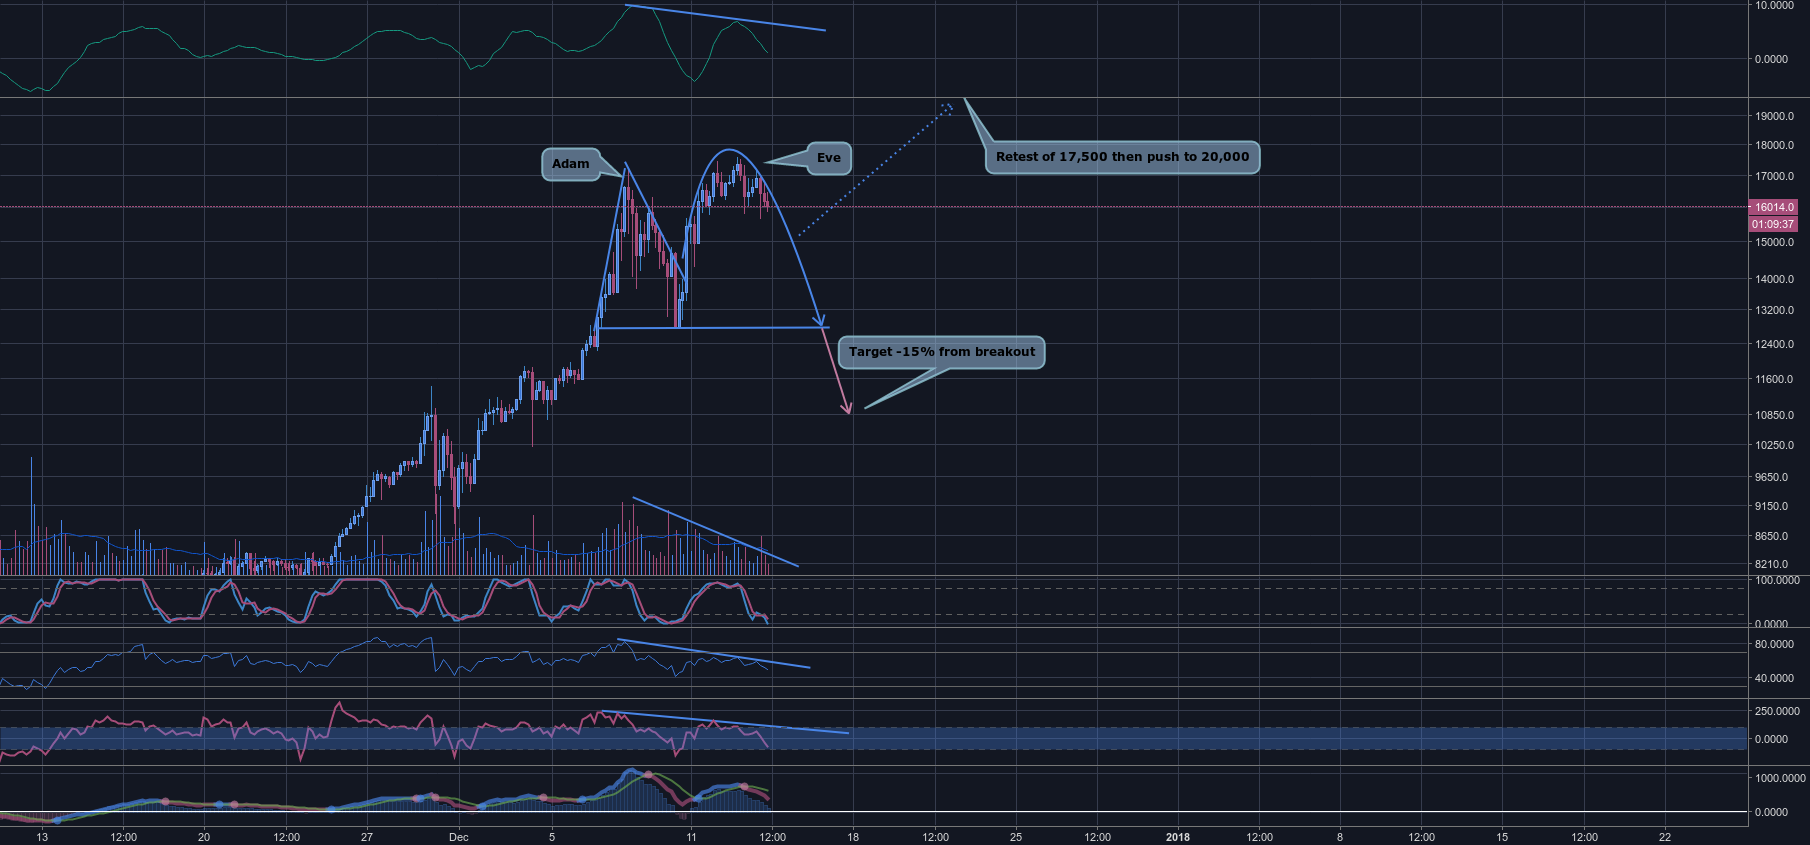 $BTCUSD - Adam and Eve double top forming leading to correction